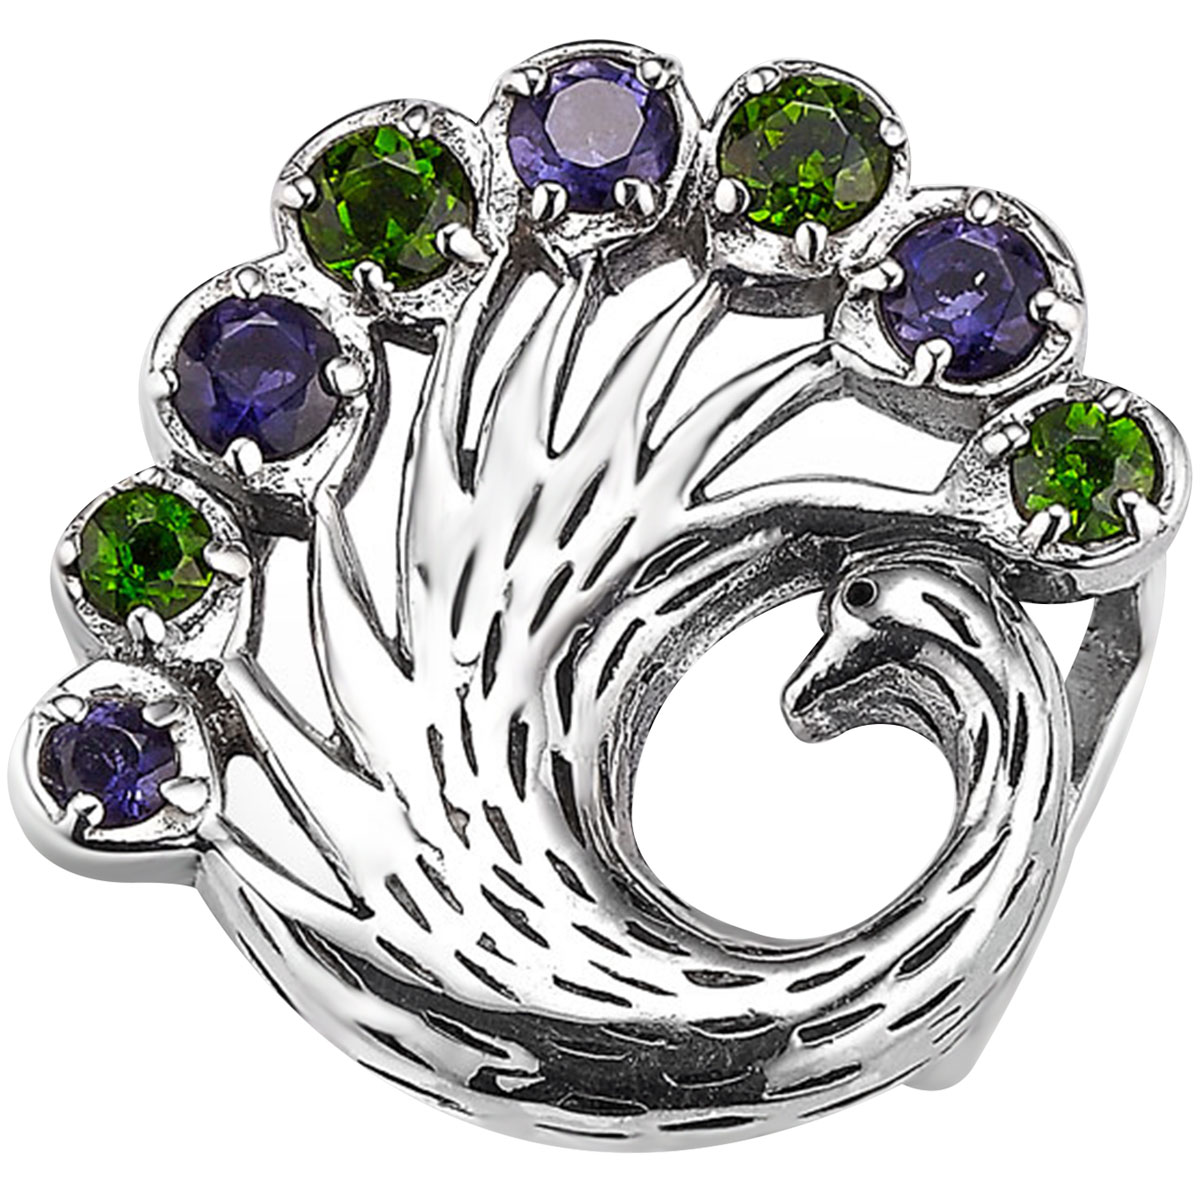 338689-Lori Bonn Proud as a Peacock Slide Charm LIMITED EDITION ONLY 5 LEFT!